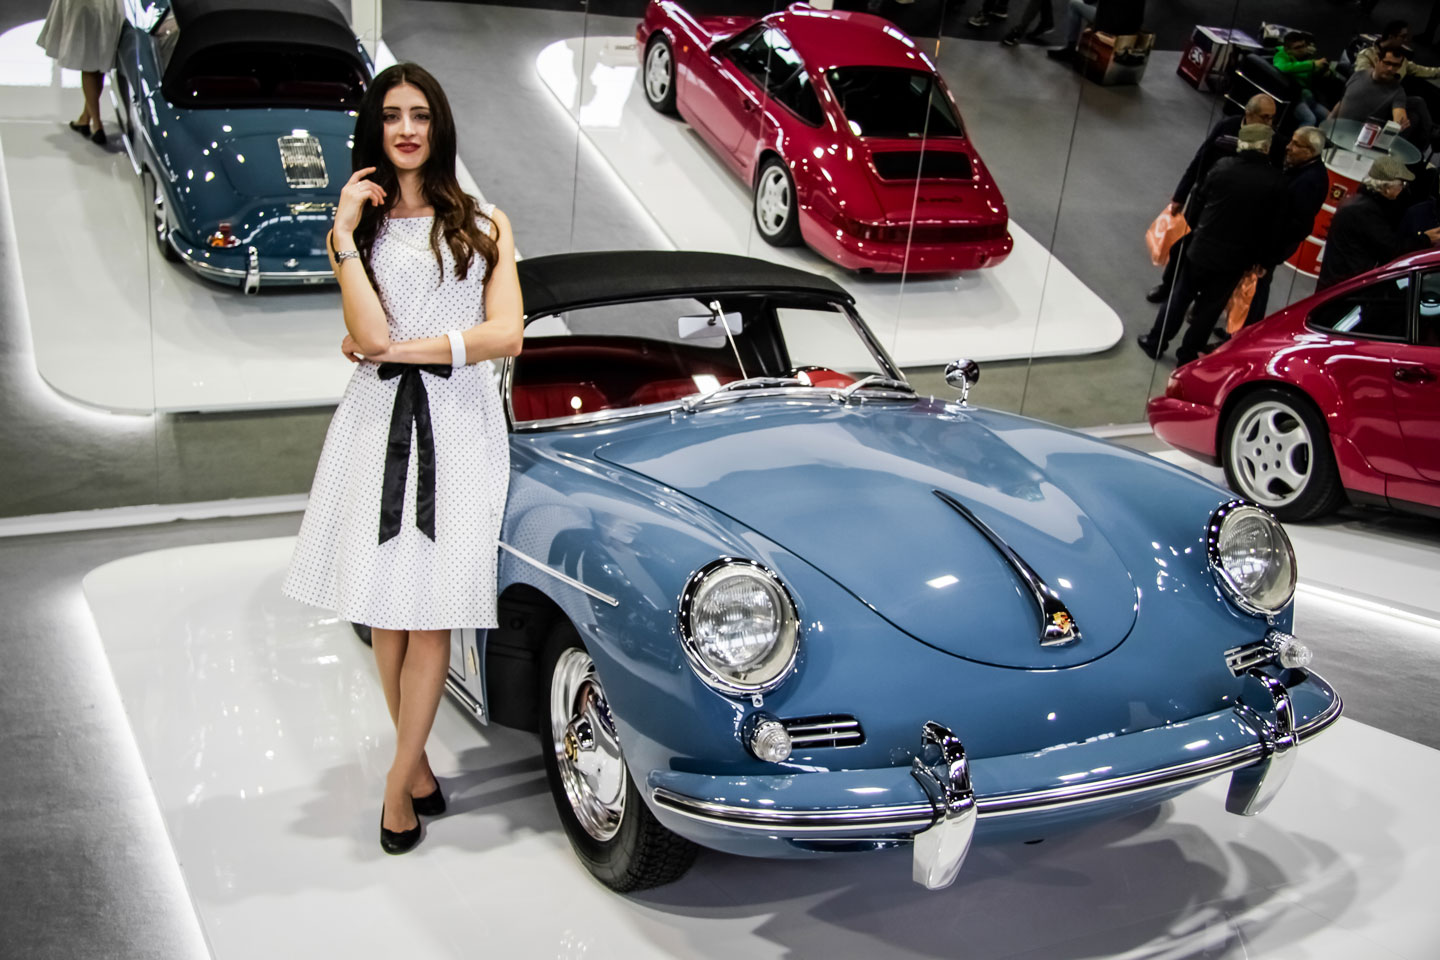 Auto Moto Epoca: Italy's largest classic car show steps up to the world stage